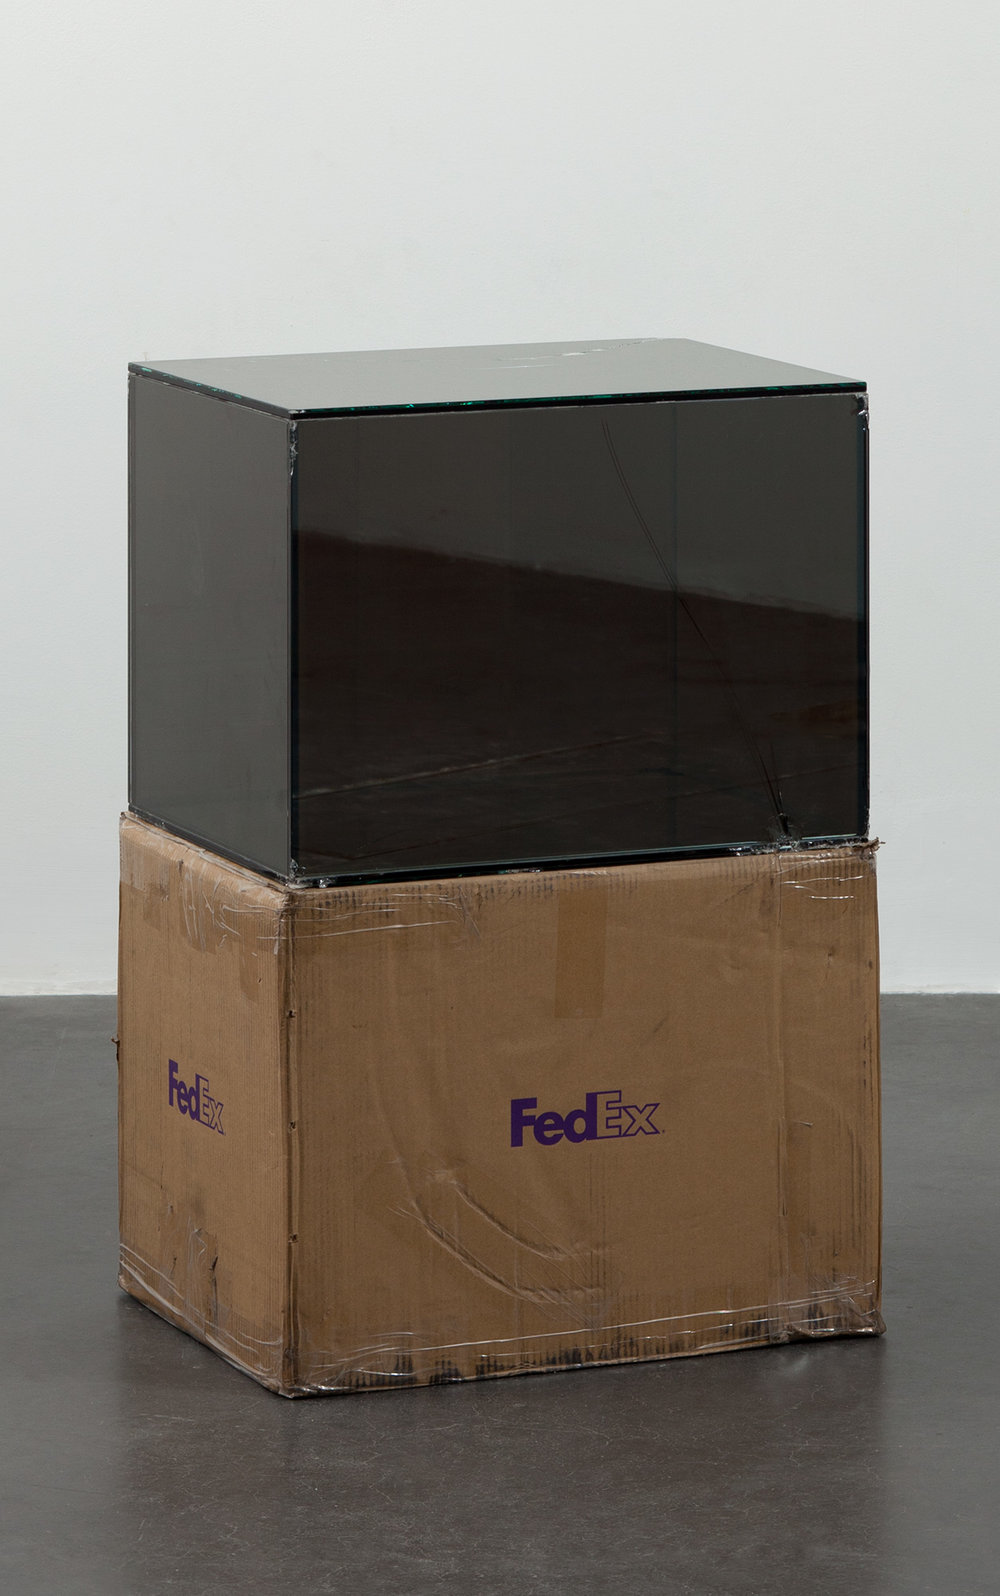 FedEx® Large Kraft Box  © 2004 FEDEX 155143 REV 10/04 SSCC, International Priority, Los Angeles–Beijing trk#875468976030, September 9–14, 2011, International Priority, Bejing–Paris trk#874594463967, March 13–15, 2012    2011–   Laminated Mirropane, FedEx shipping box, accrued FedEx shipping and tracking labels, silicone, metal, tape  23 5/8 x 18 1/2 x 18 1/2 inches   Securities and Exchanges, 2011